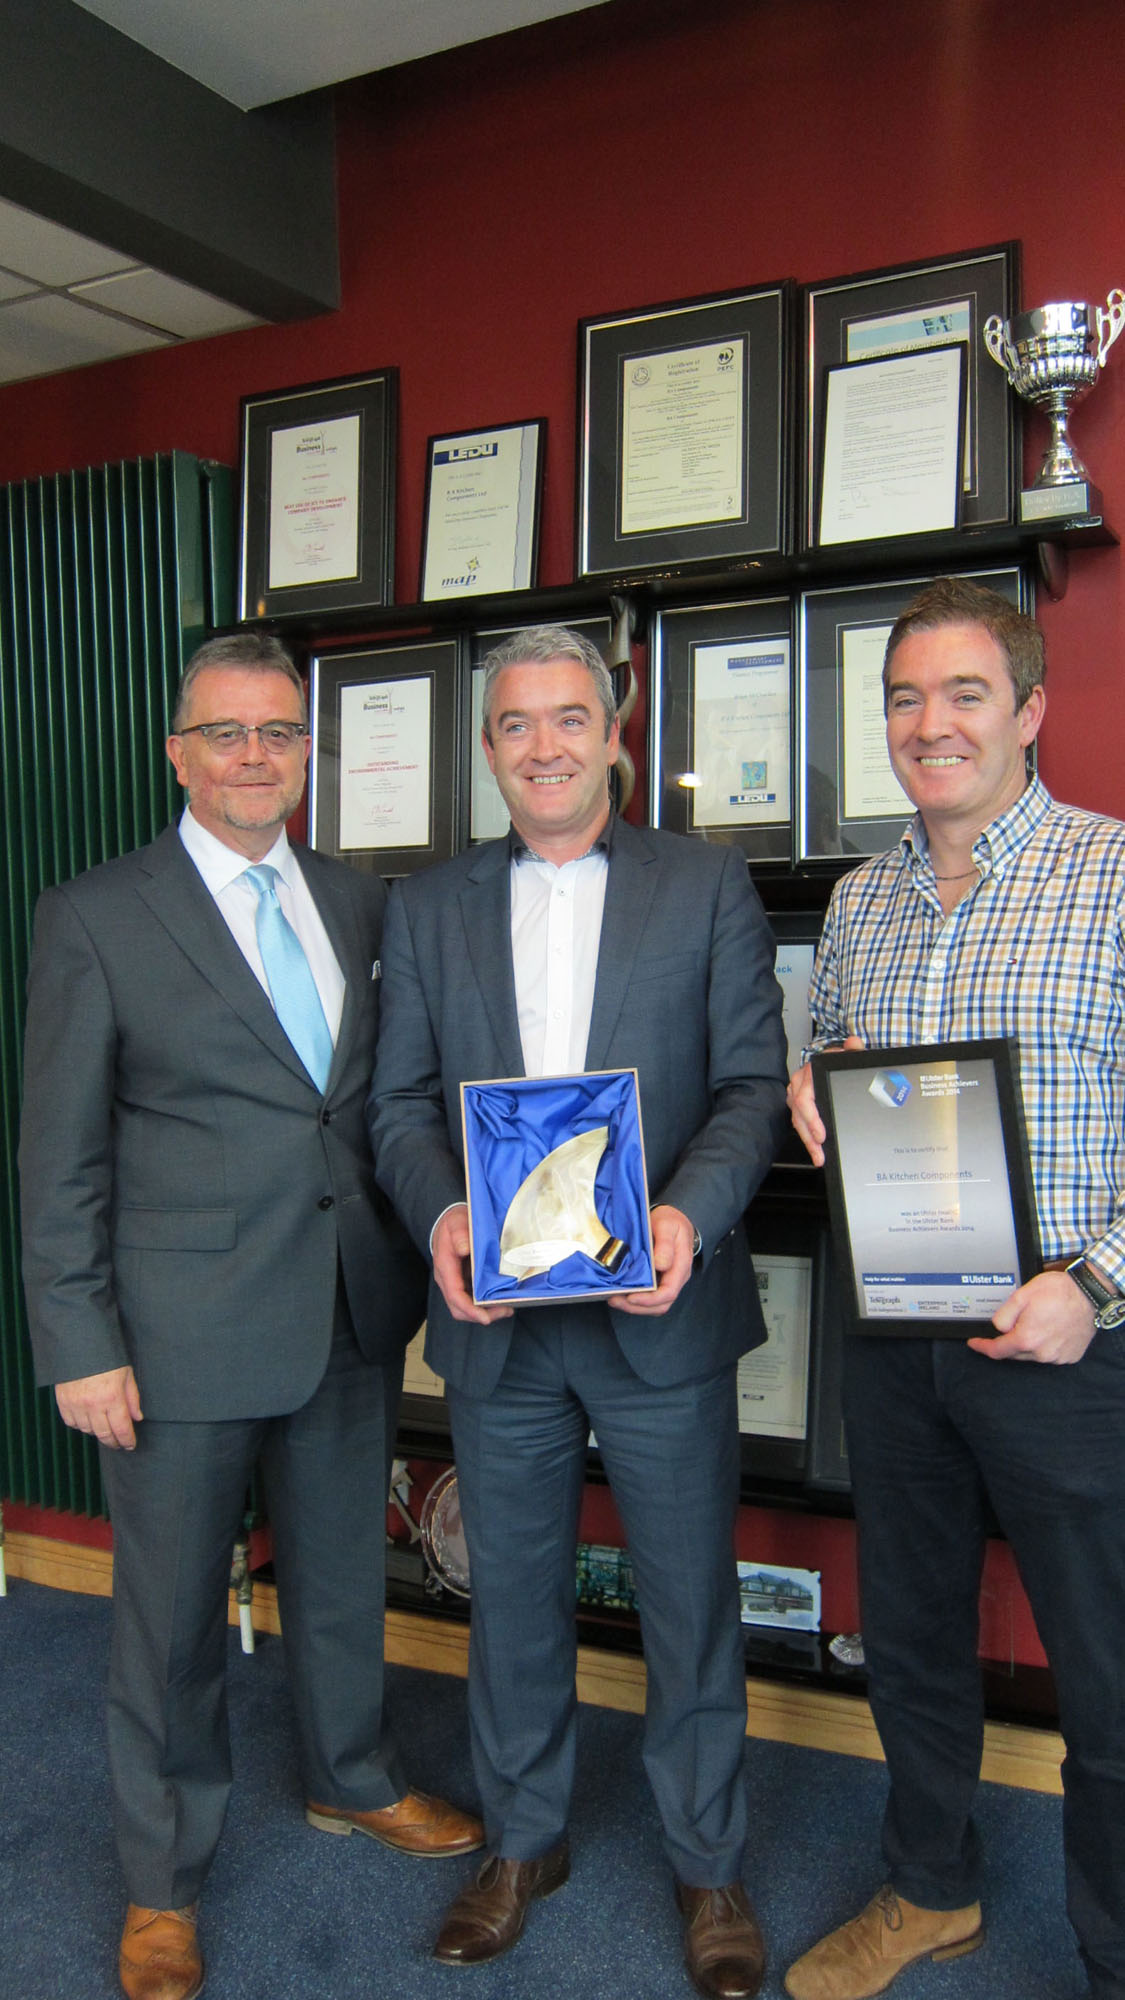 BA Components Awarded Best SME at The Ulster Bank Awards